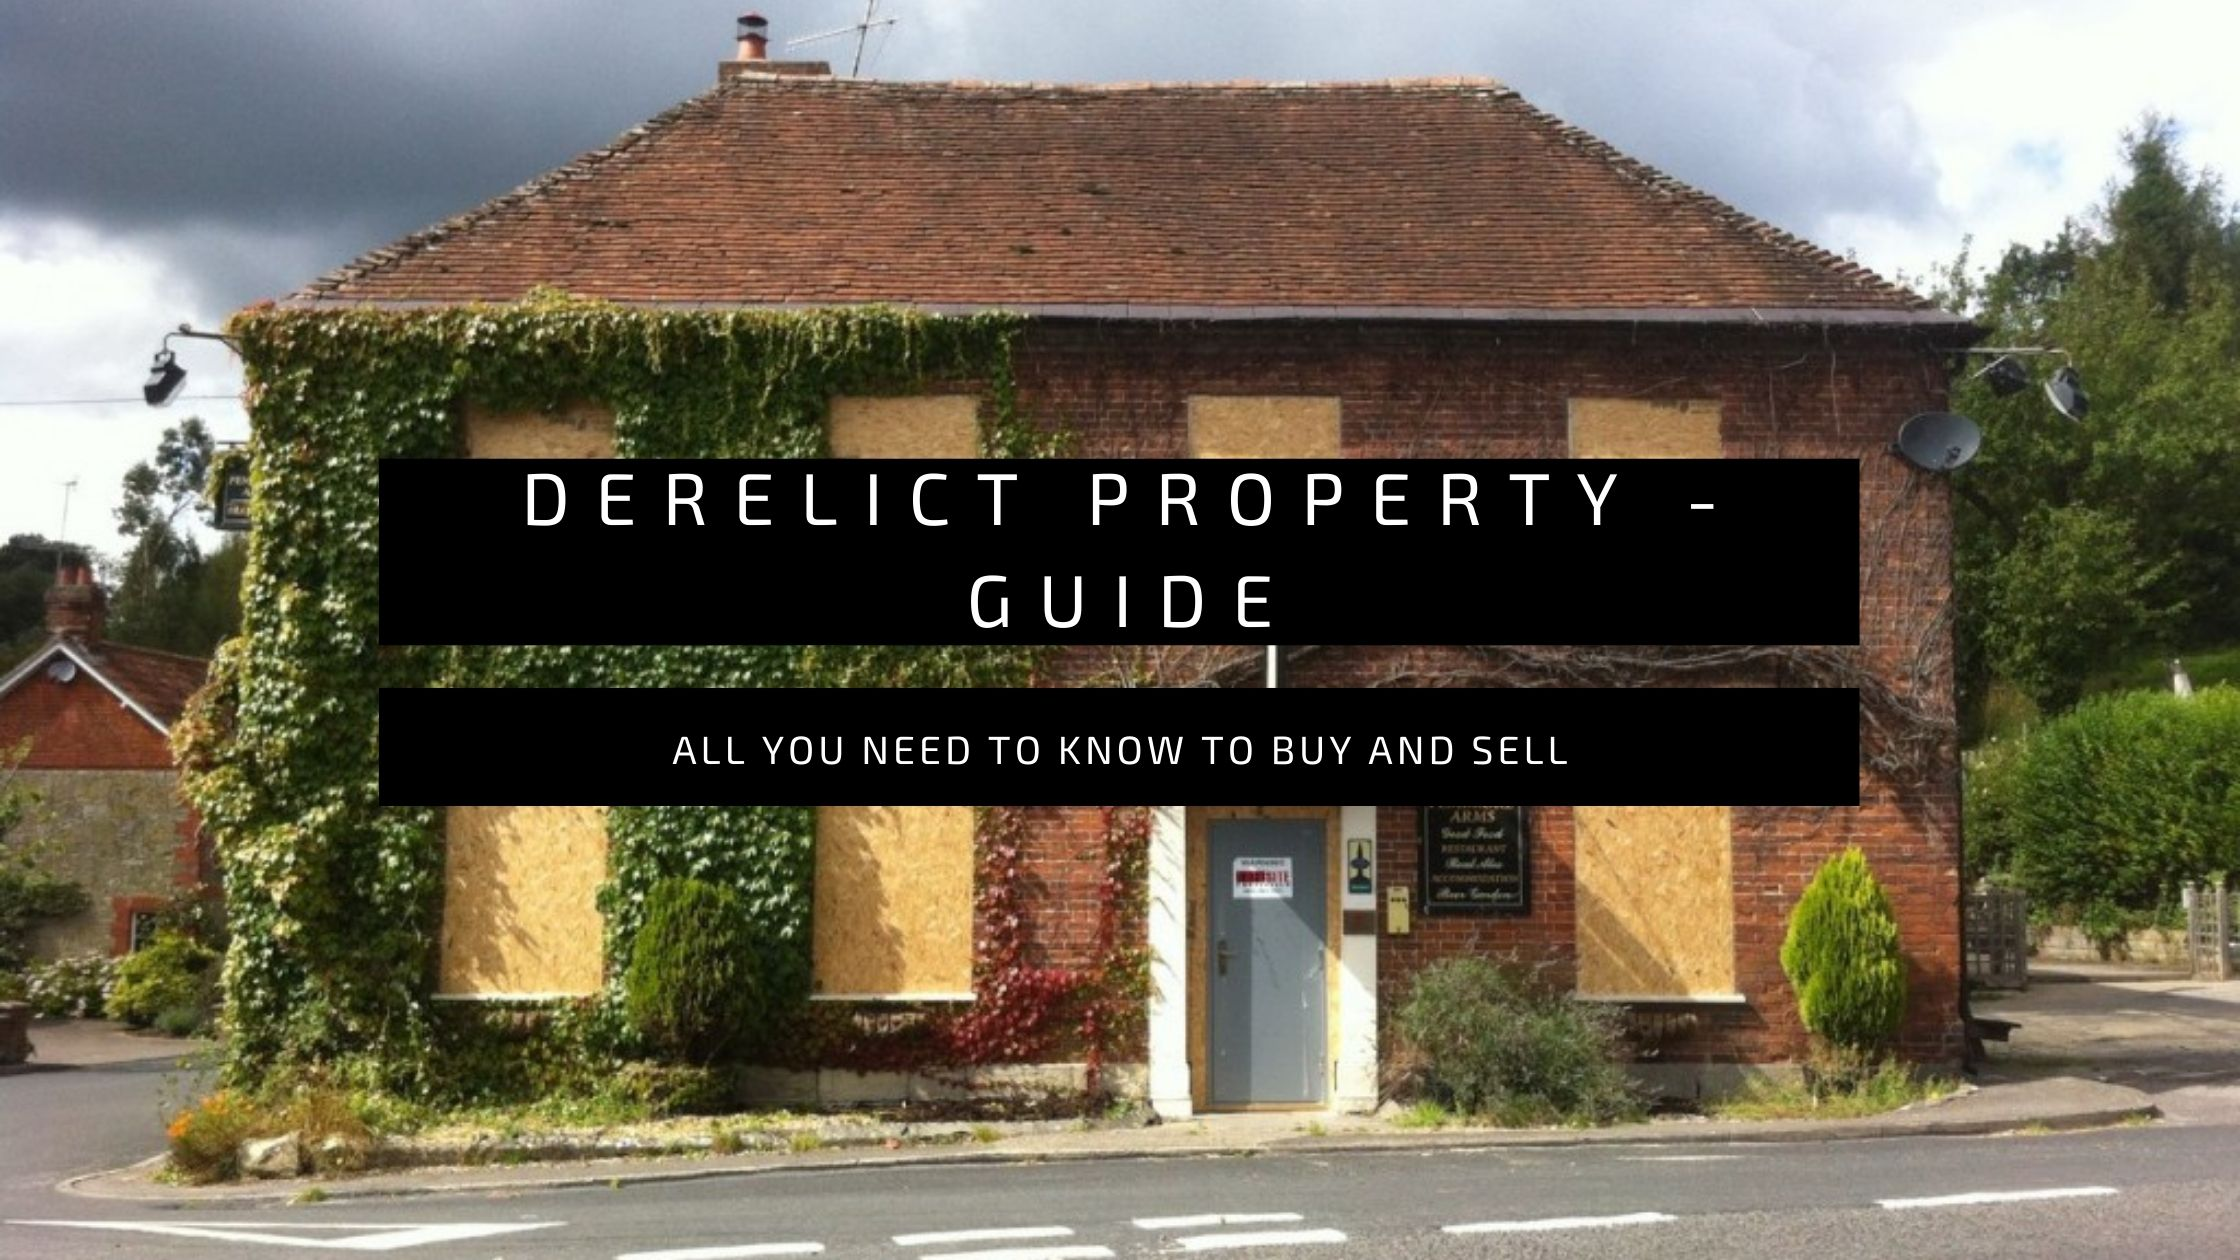 Derelict Property Sale (Selling Run-Down Property) – Guide